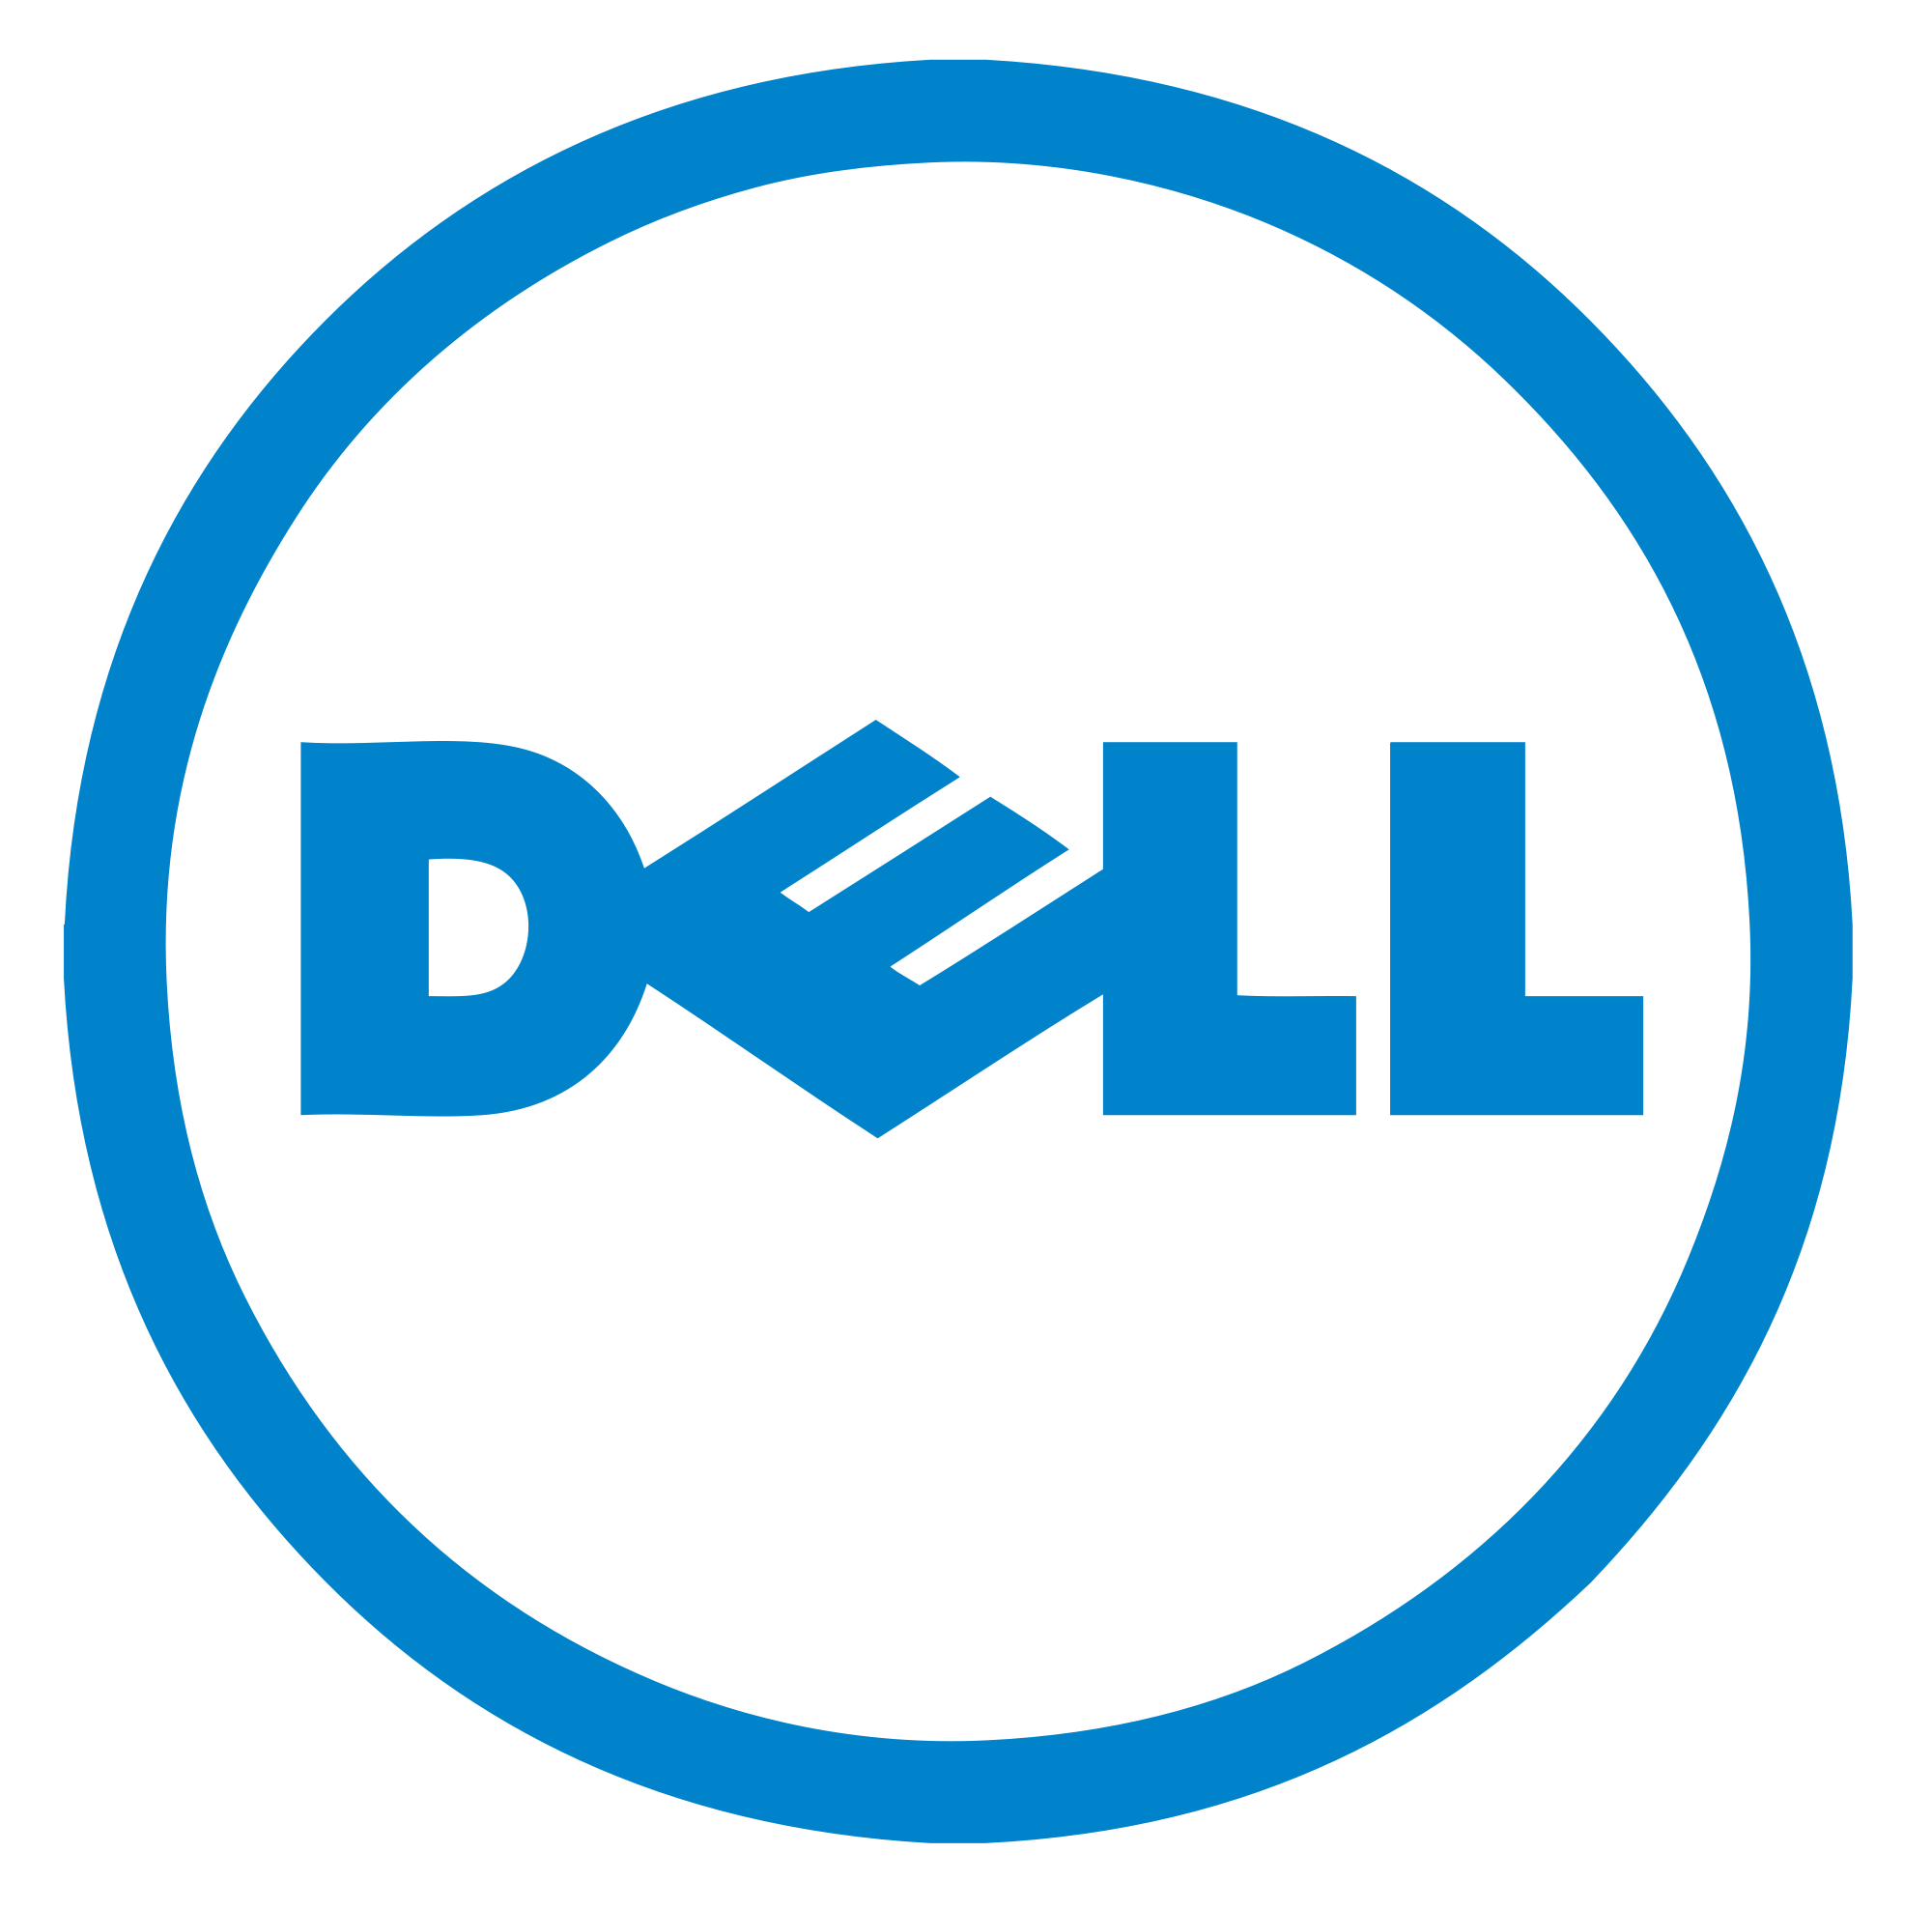 02- Dell.png